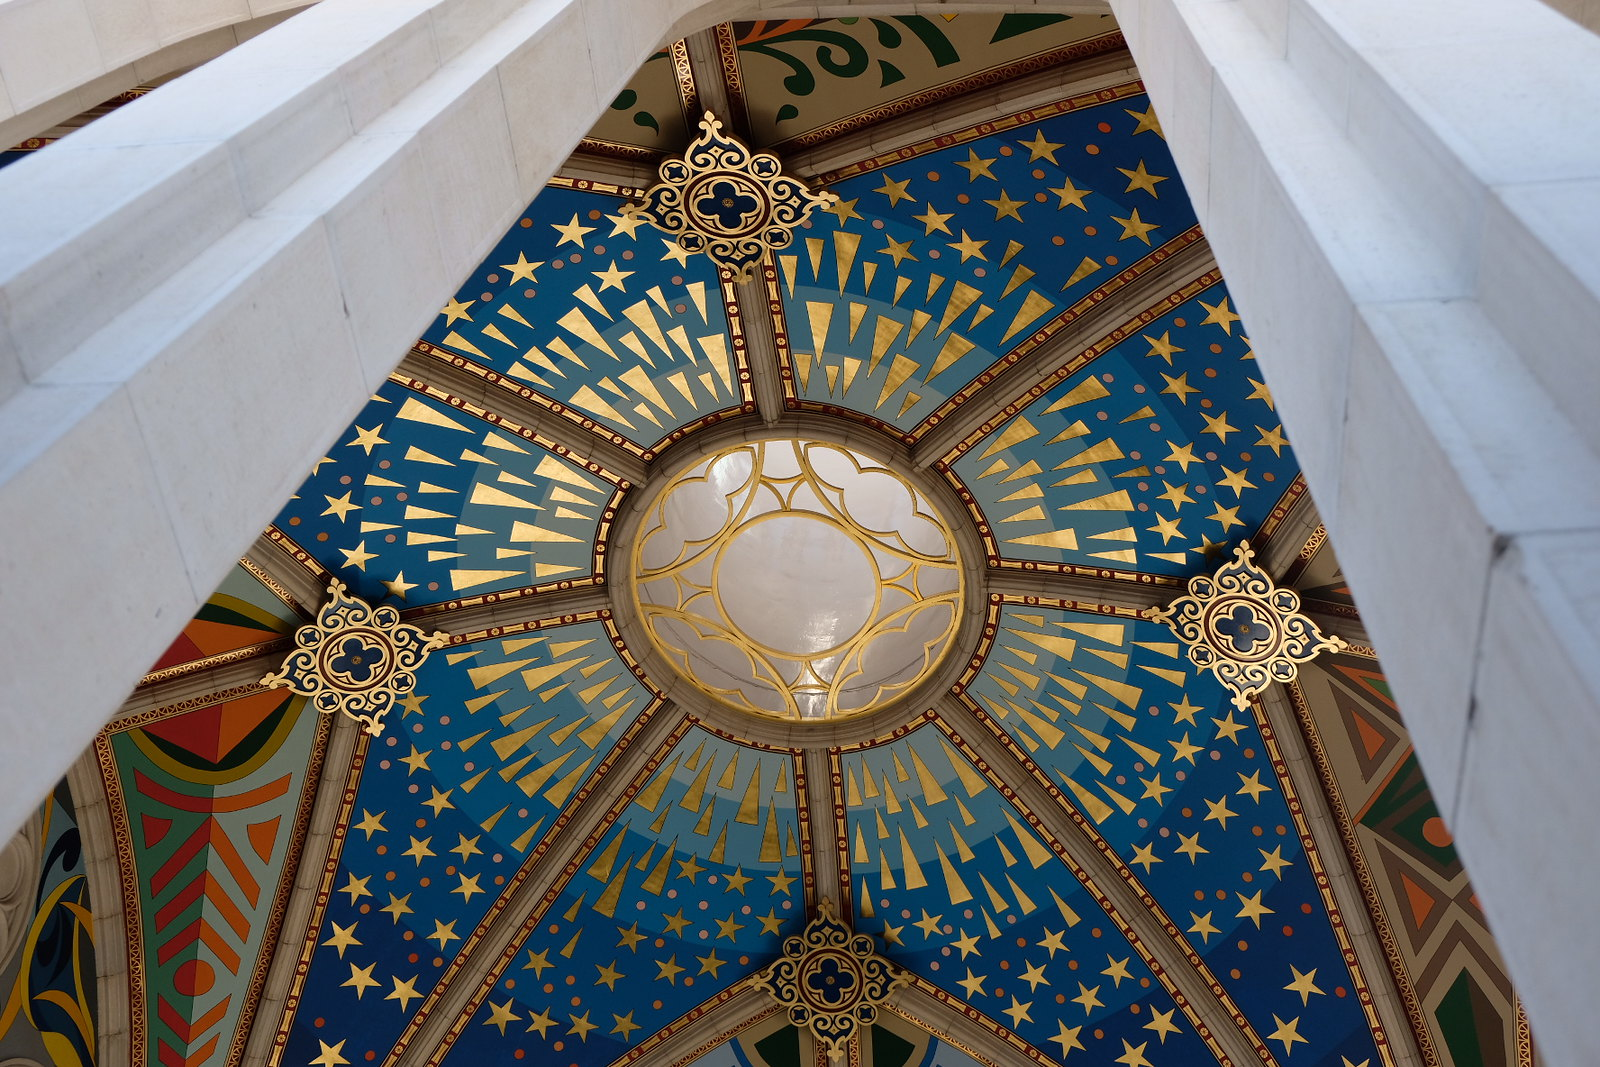 The Dome of the Cathedral of Alemundo